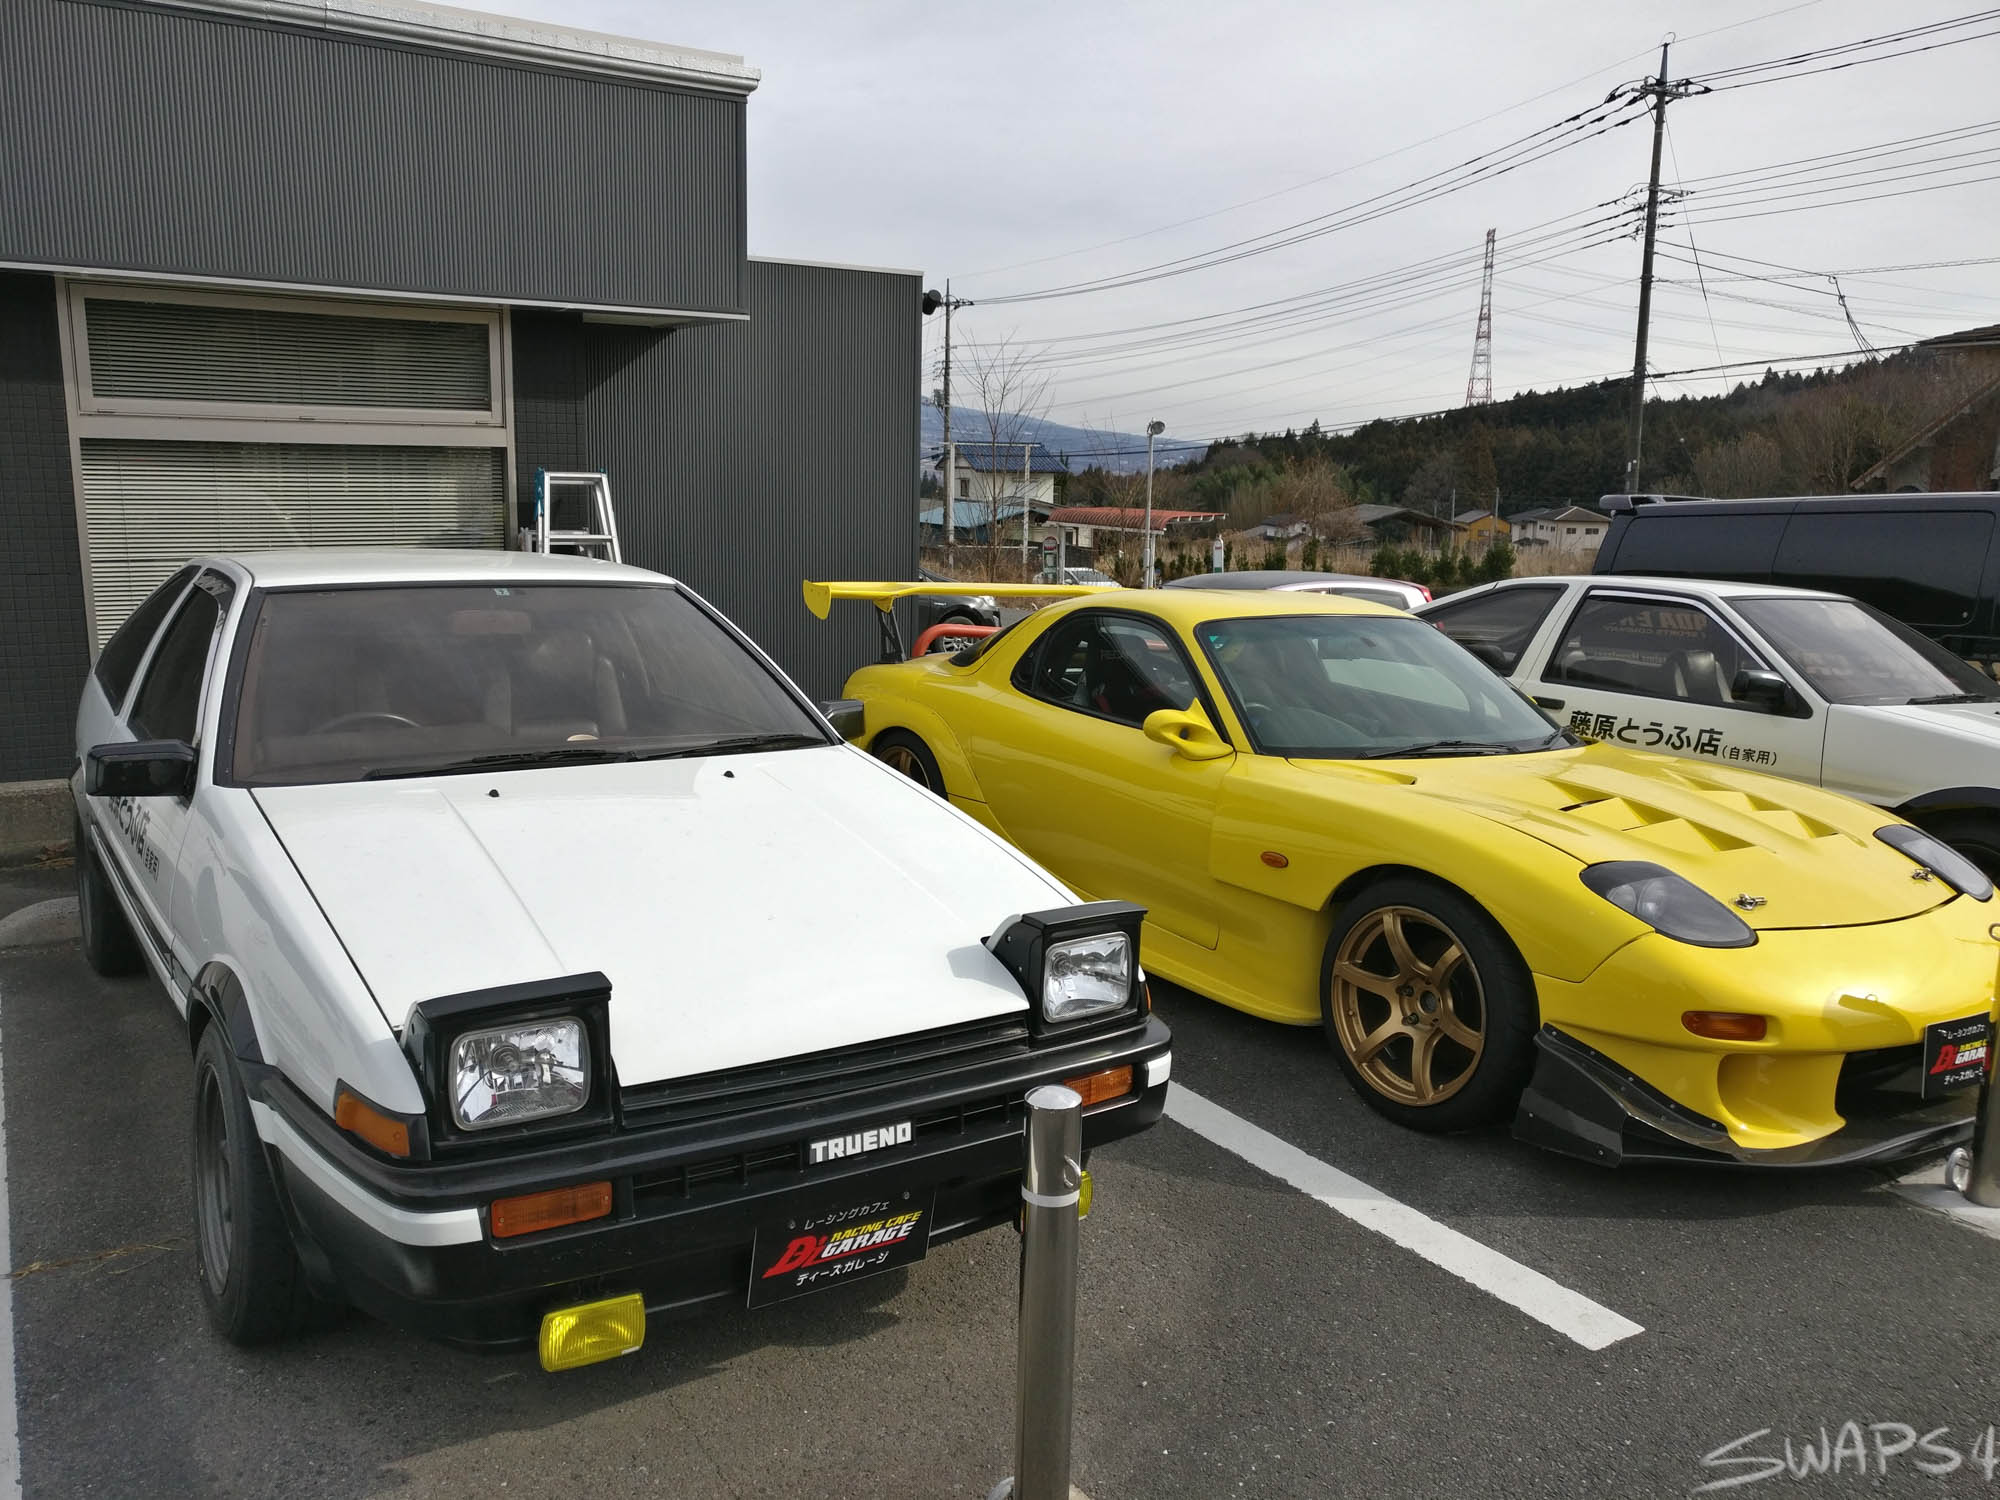 A Trip to D'Z Racing Cafe Garage and the Fujiwara Tofu Shop!